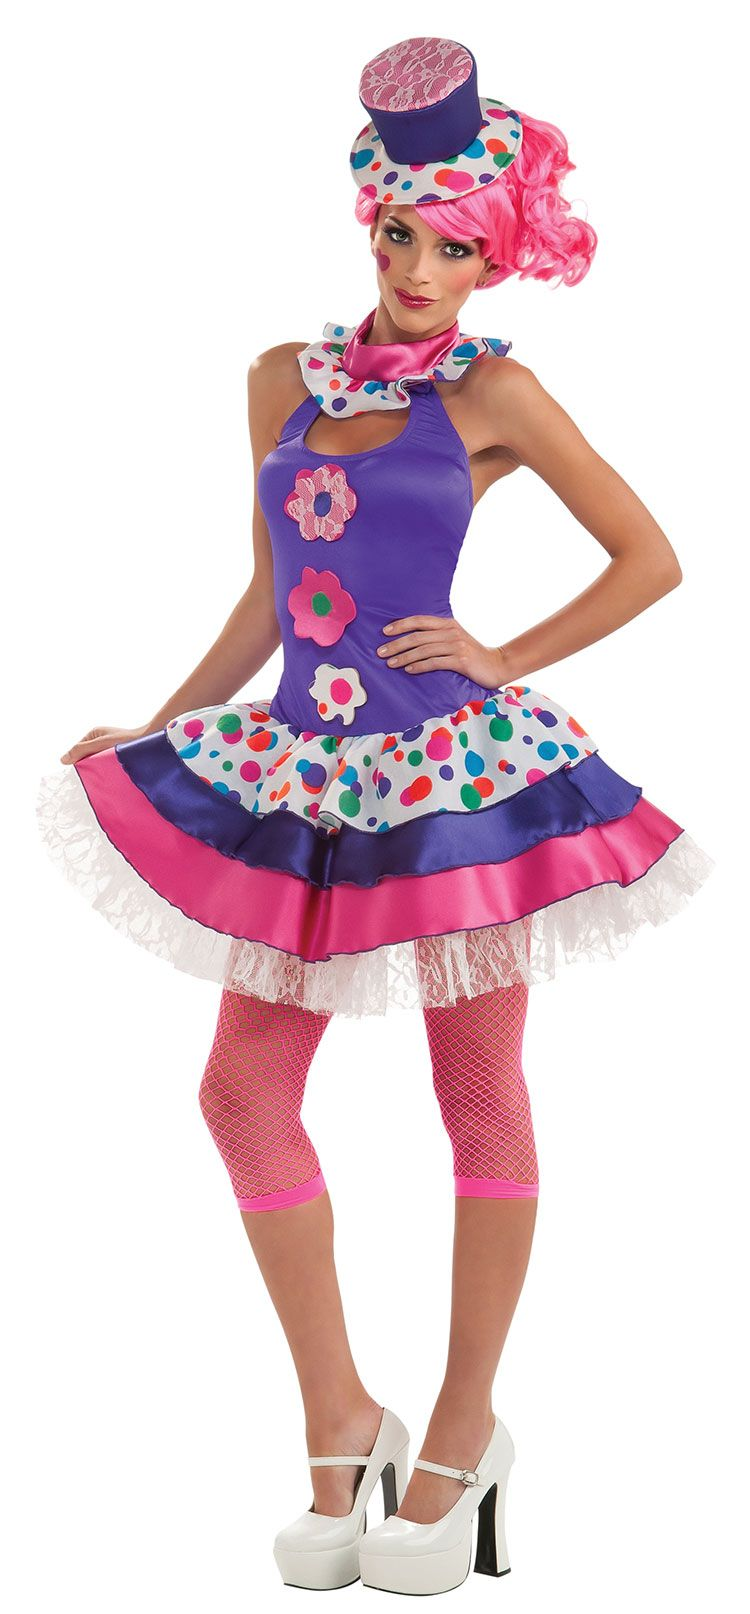 jellybean clown costume costumes make up pinterest costumes halloween costumes and. Black Bedroom Furniture Sets. Home Design Ideas